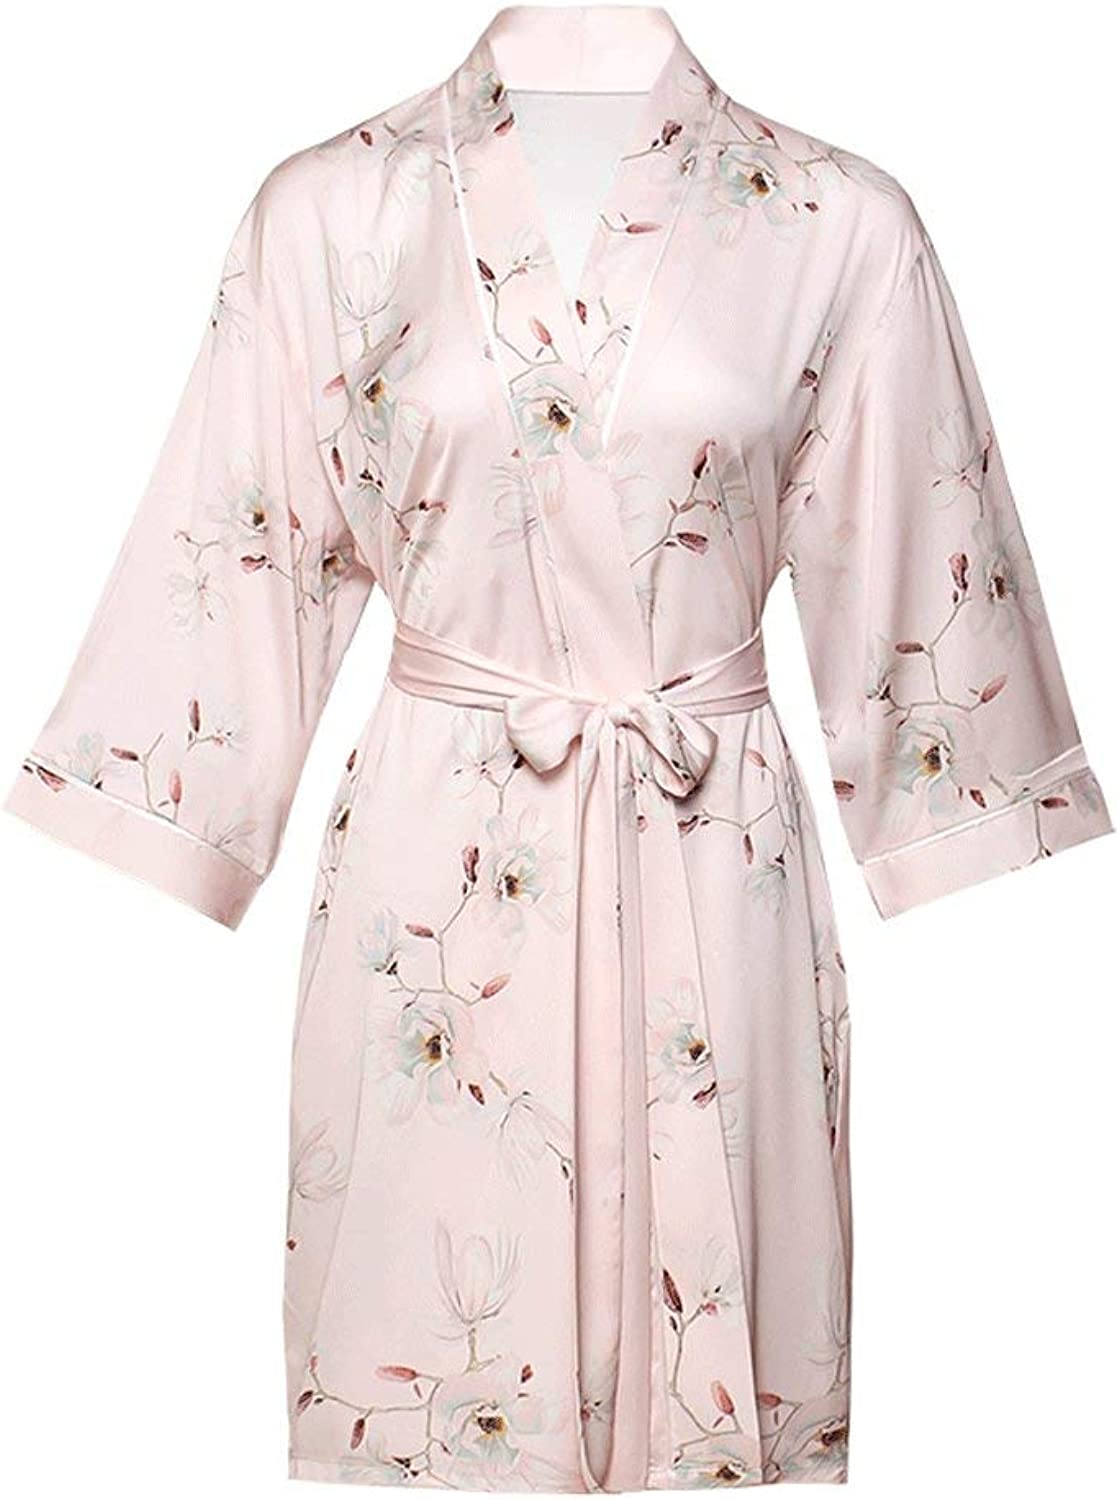 Short Sexy Satin Robes,Luxurious Silk Dressing Gown Lightweigh Pajamas Soft Nightgown for Party Wedding Bridal,PinkL